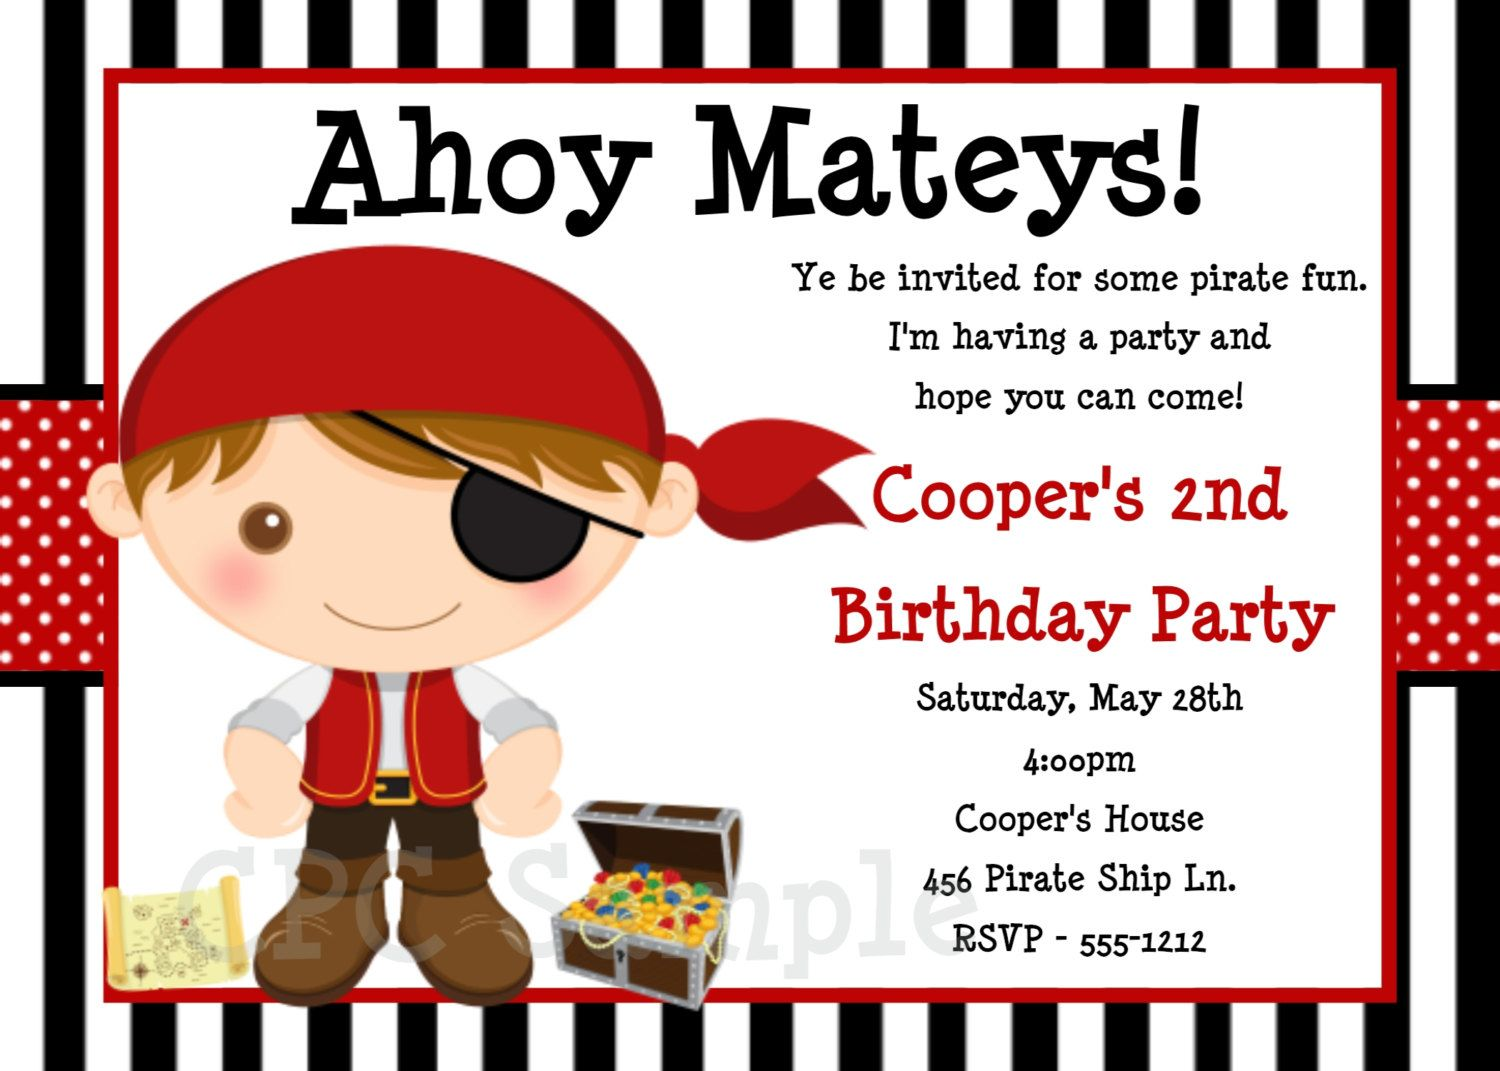 pirate themed birthday party invitation ideas ; 409f32100b9cc02996274b543d561d24